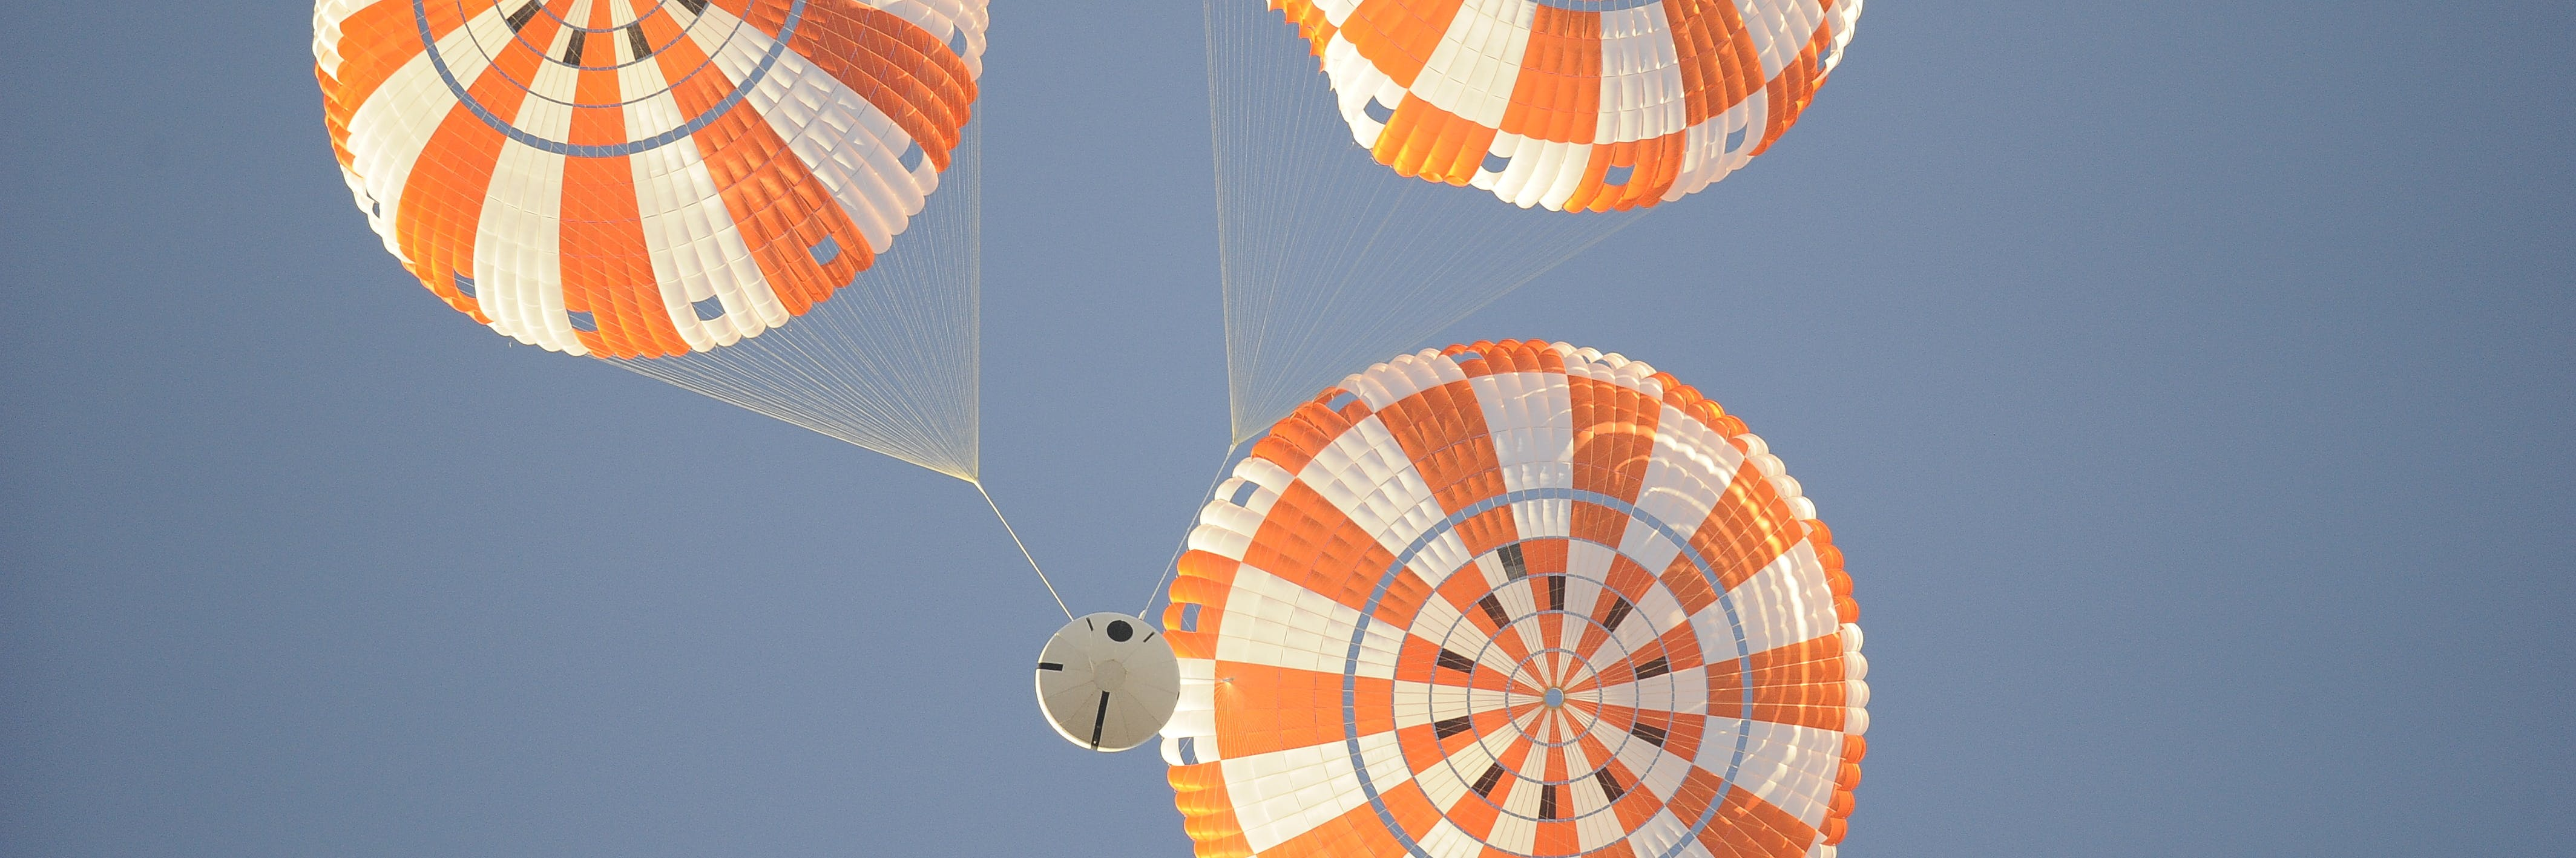 NASA's Orion spacecraft, or a model of it at least, falls from the sky on a triple parachute system.